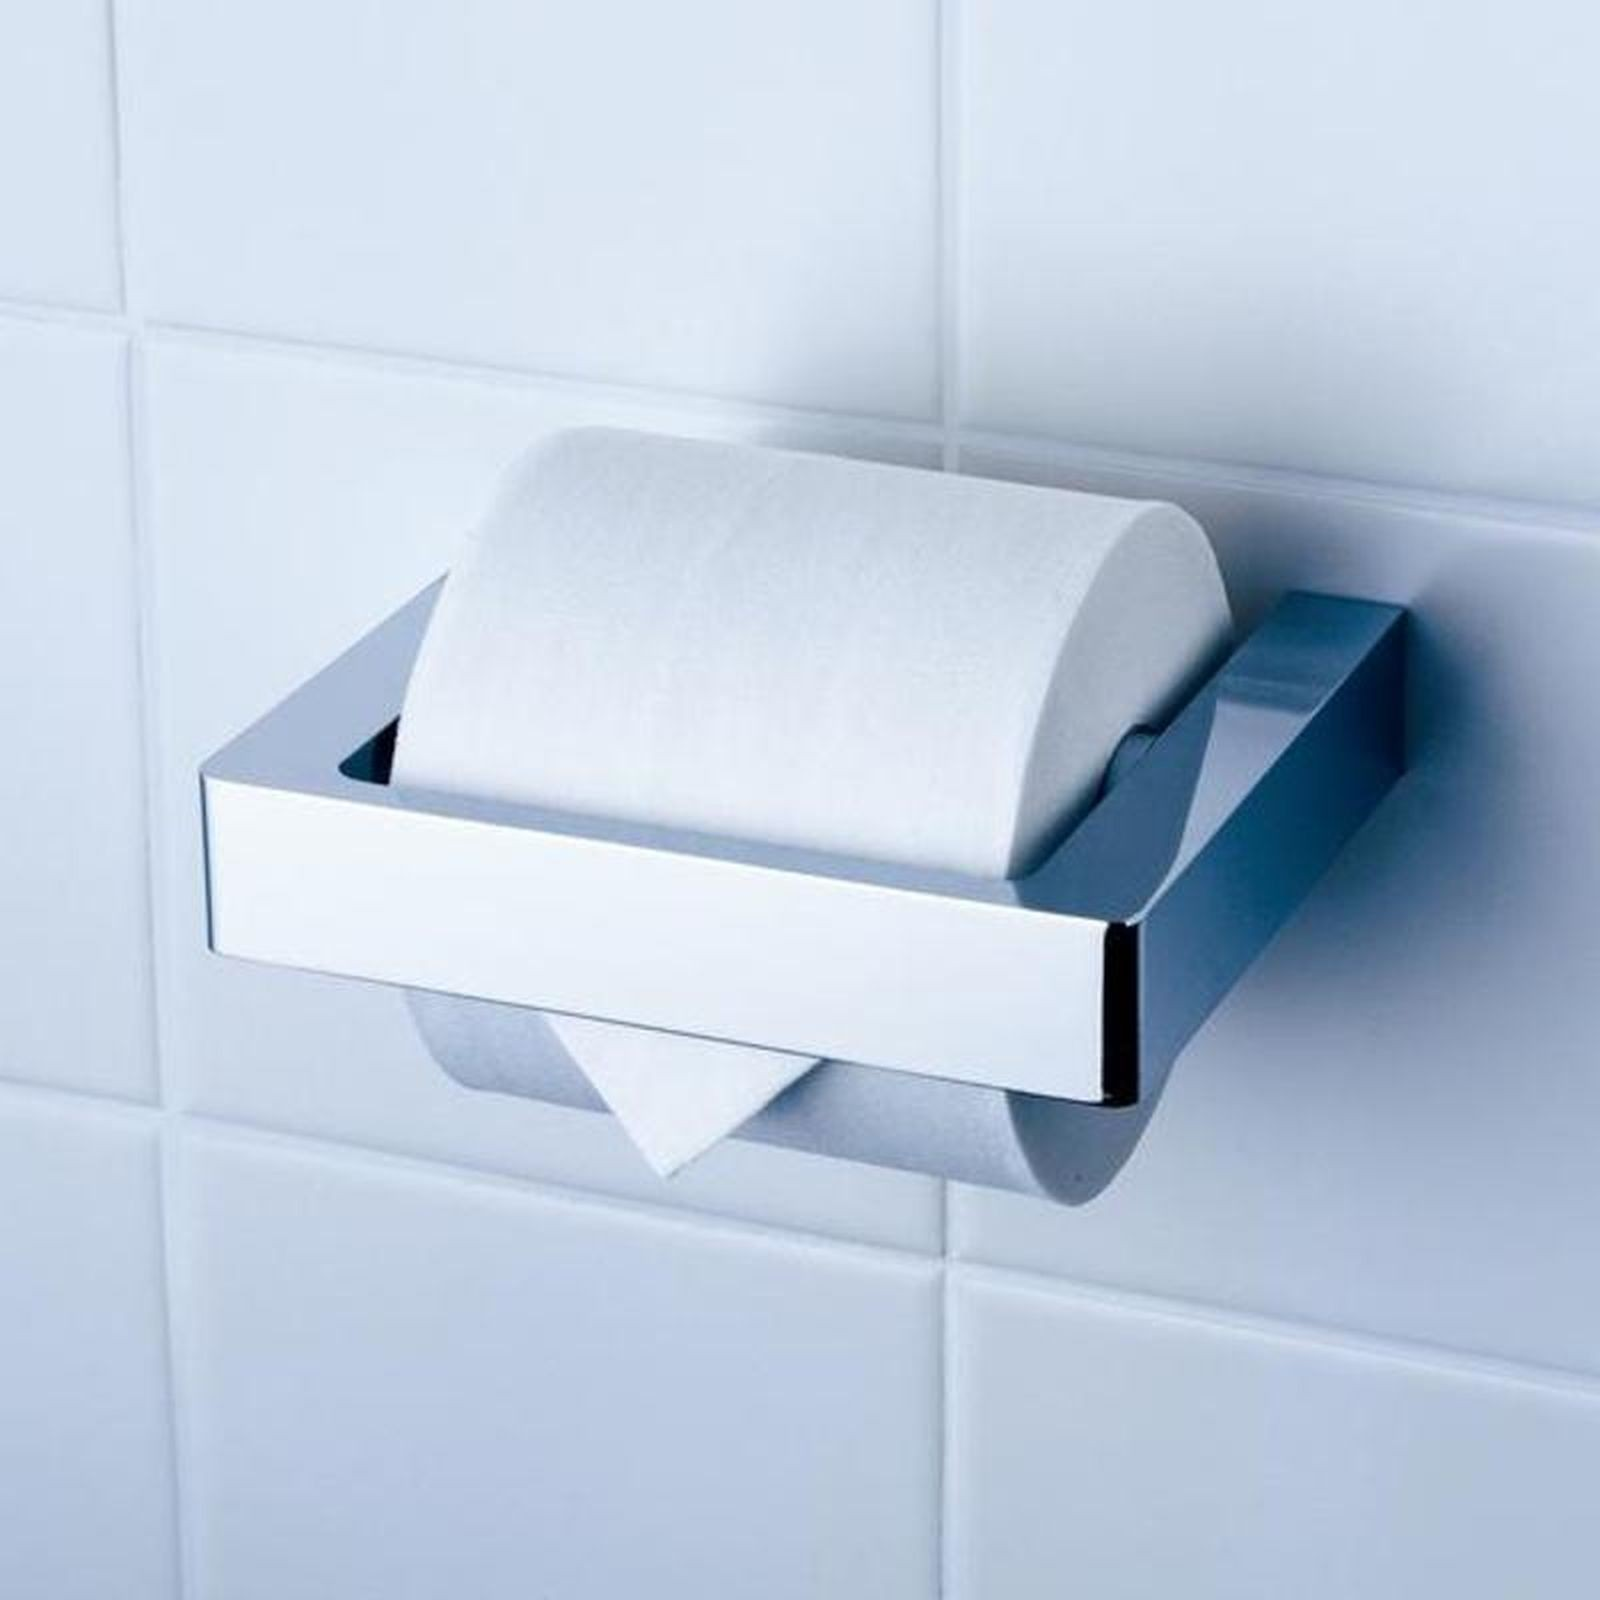 Dorf bathroom accessories - Download Cad Files For Dorf Motif Toilet Roll Holder